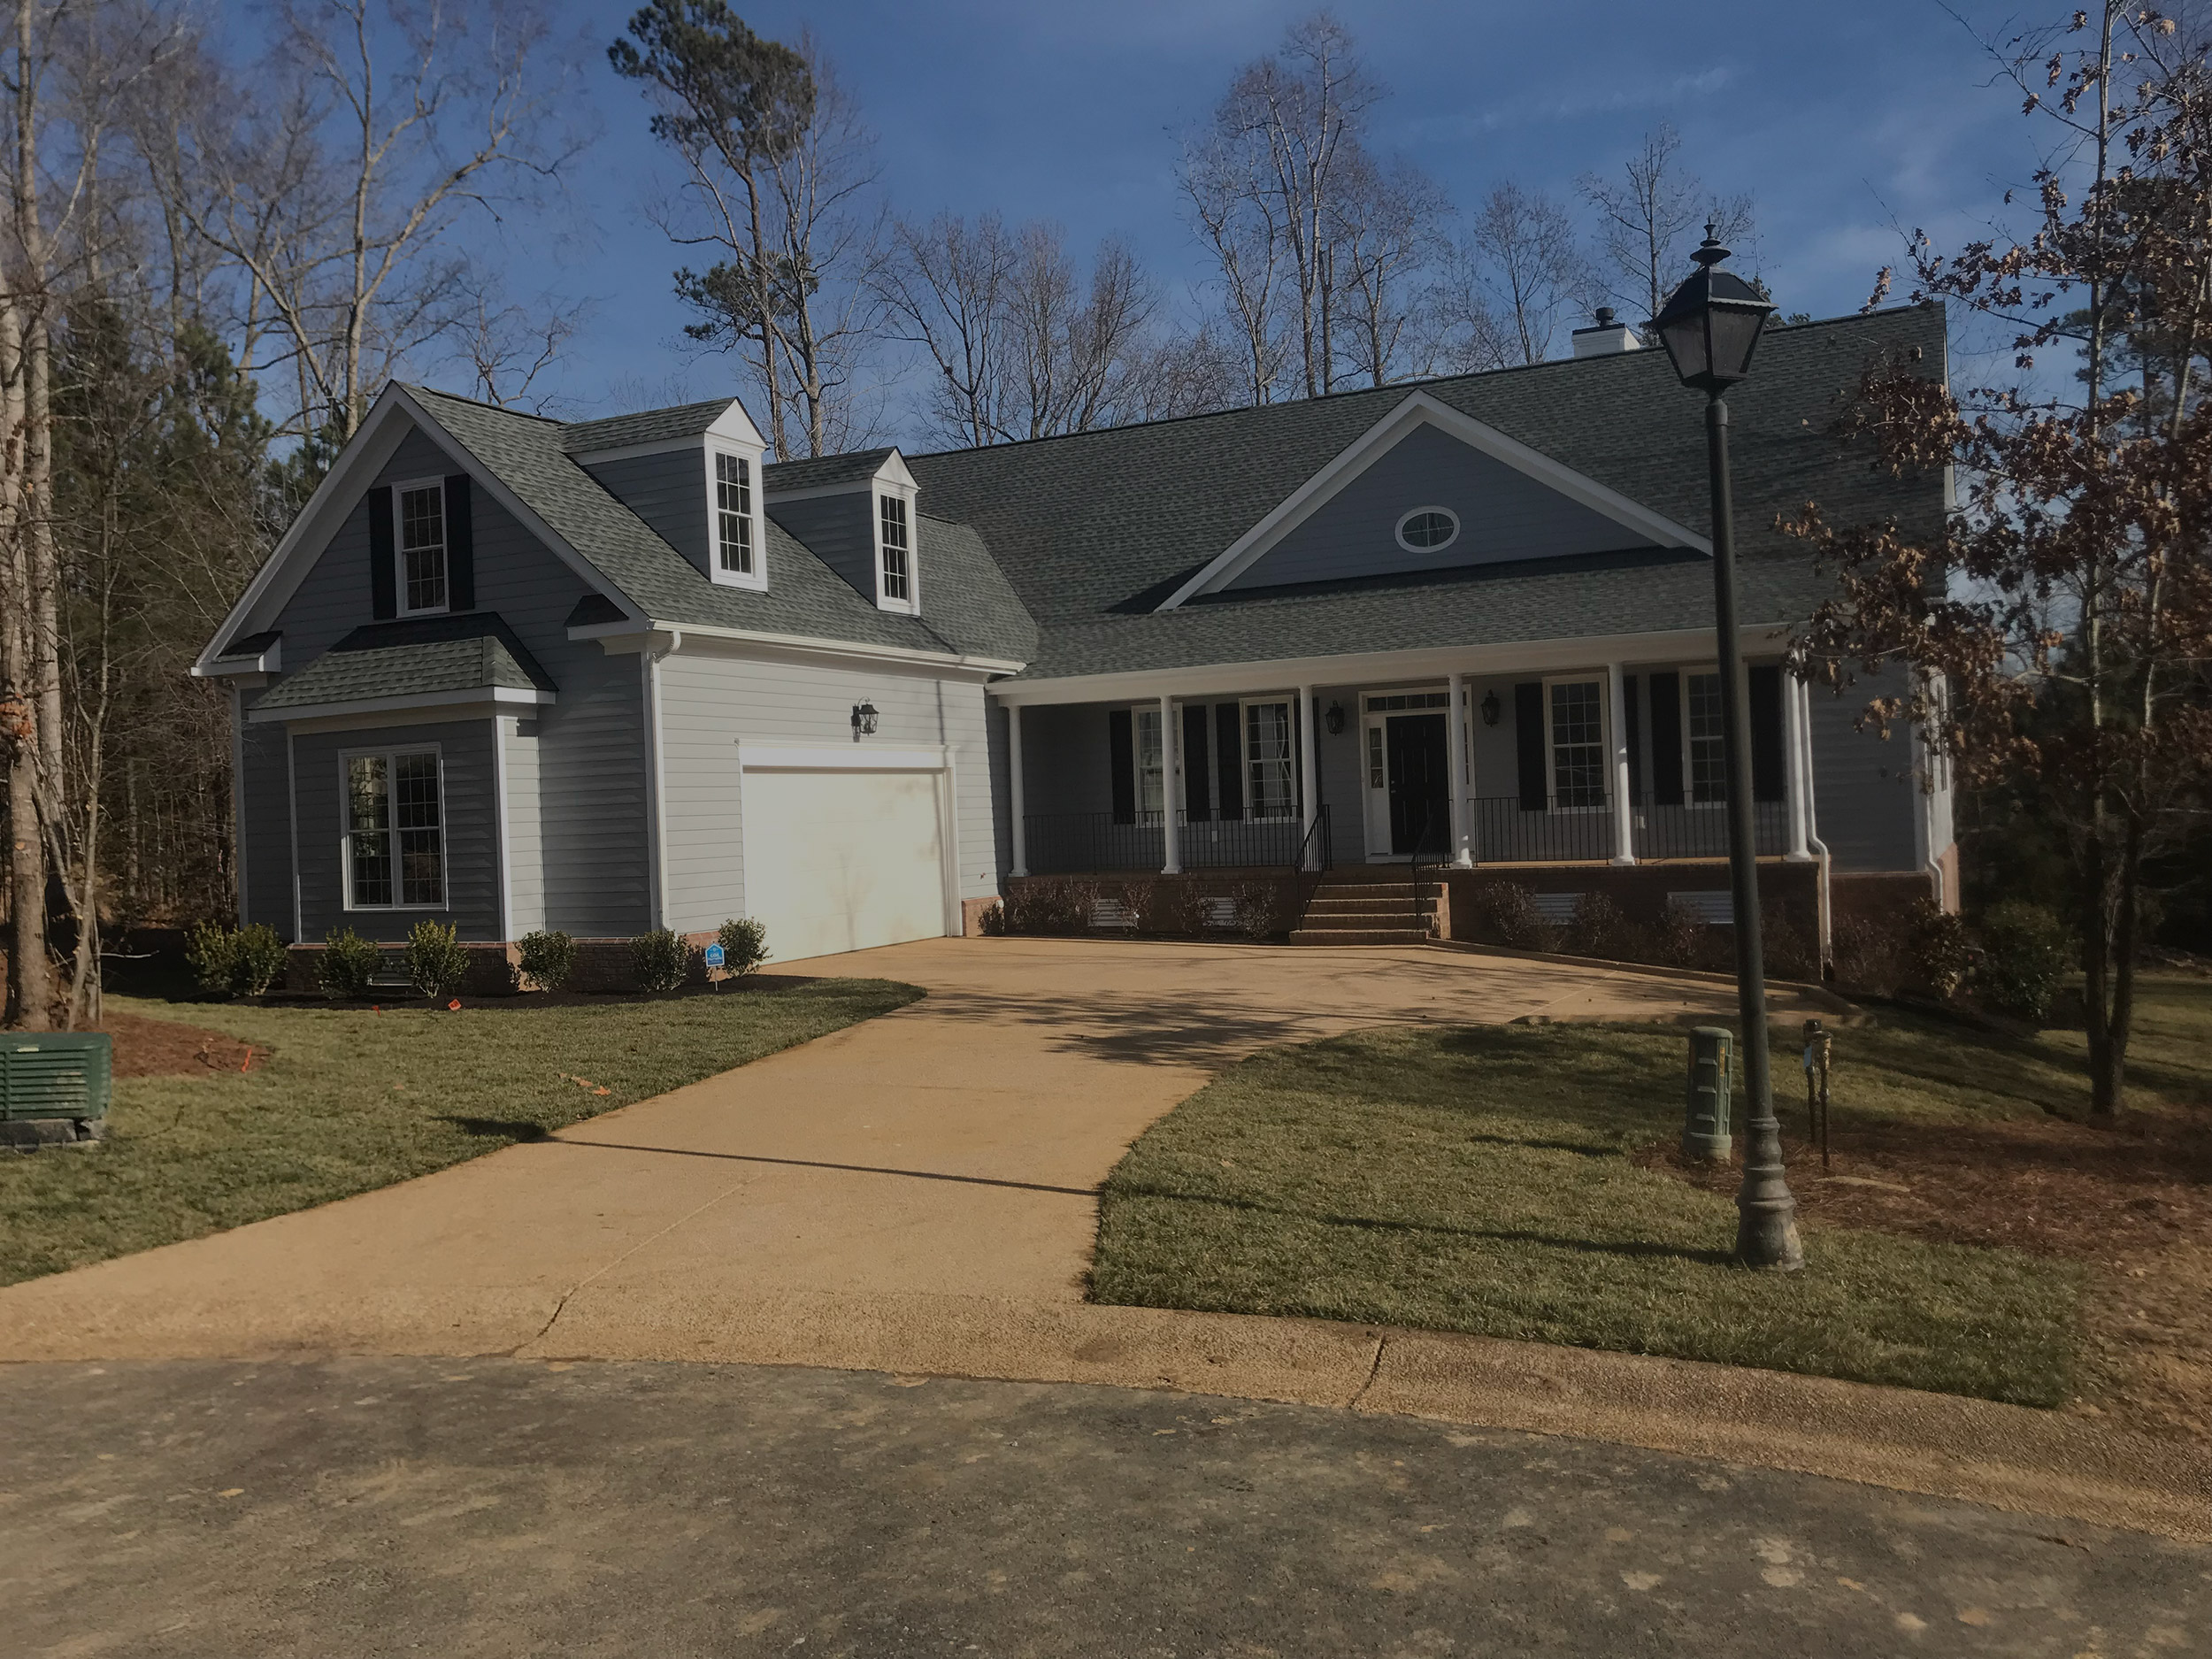 New House Construction, Williamsburg, Virginia